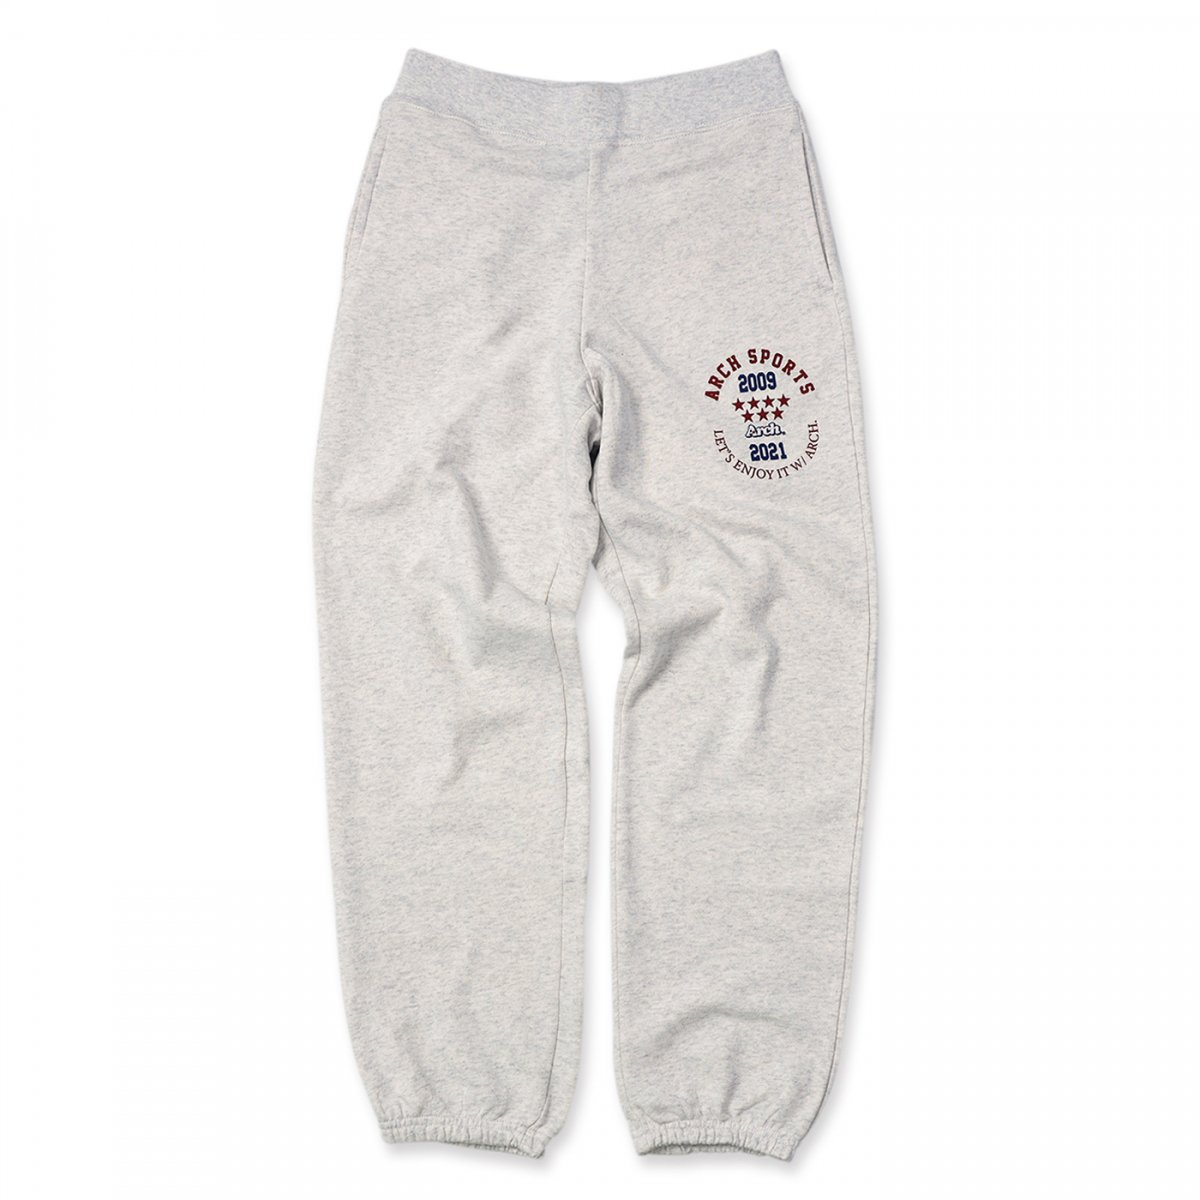 enjoy athletics pants 【oatmeal】